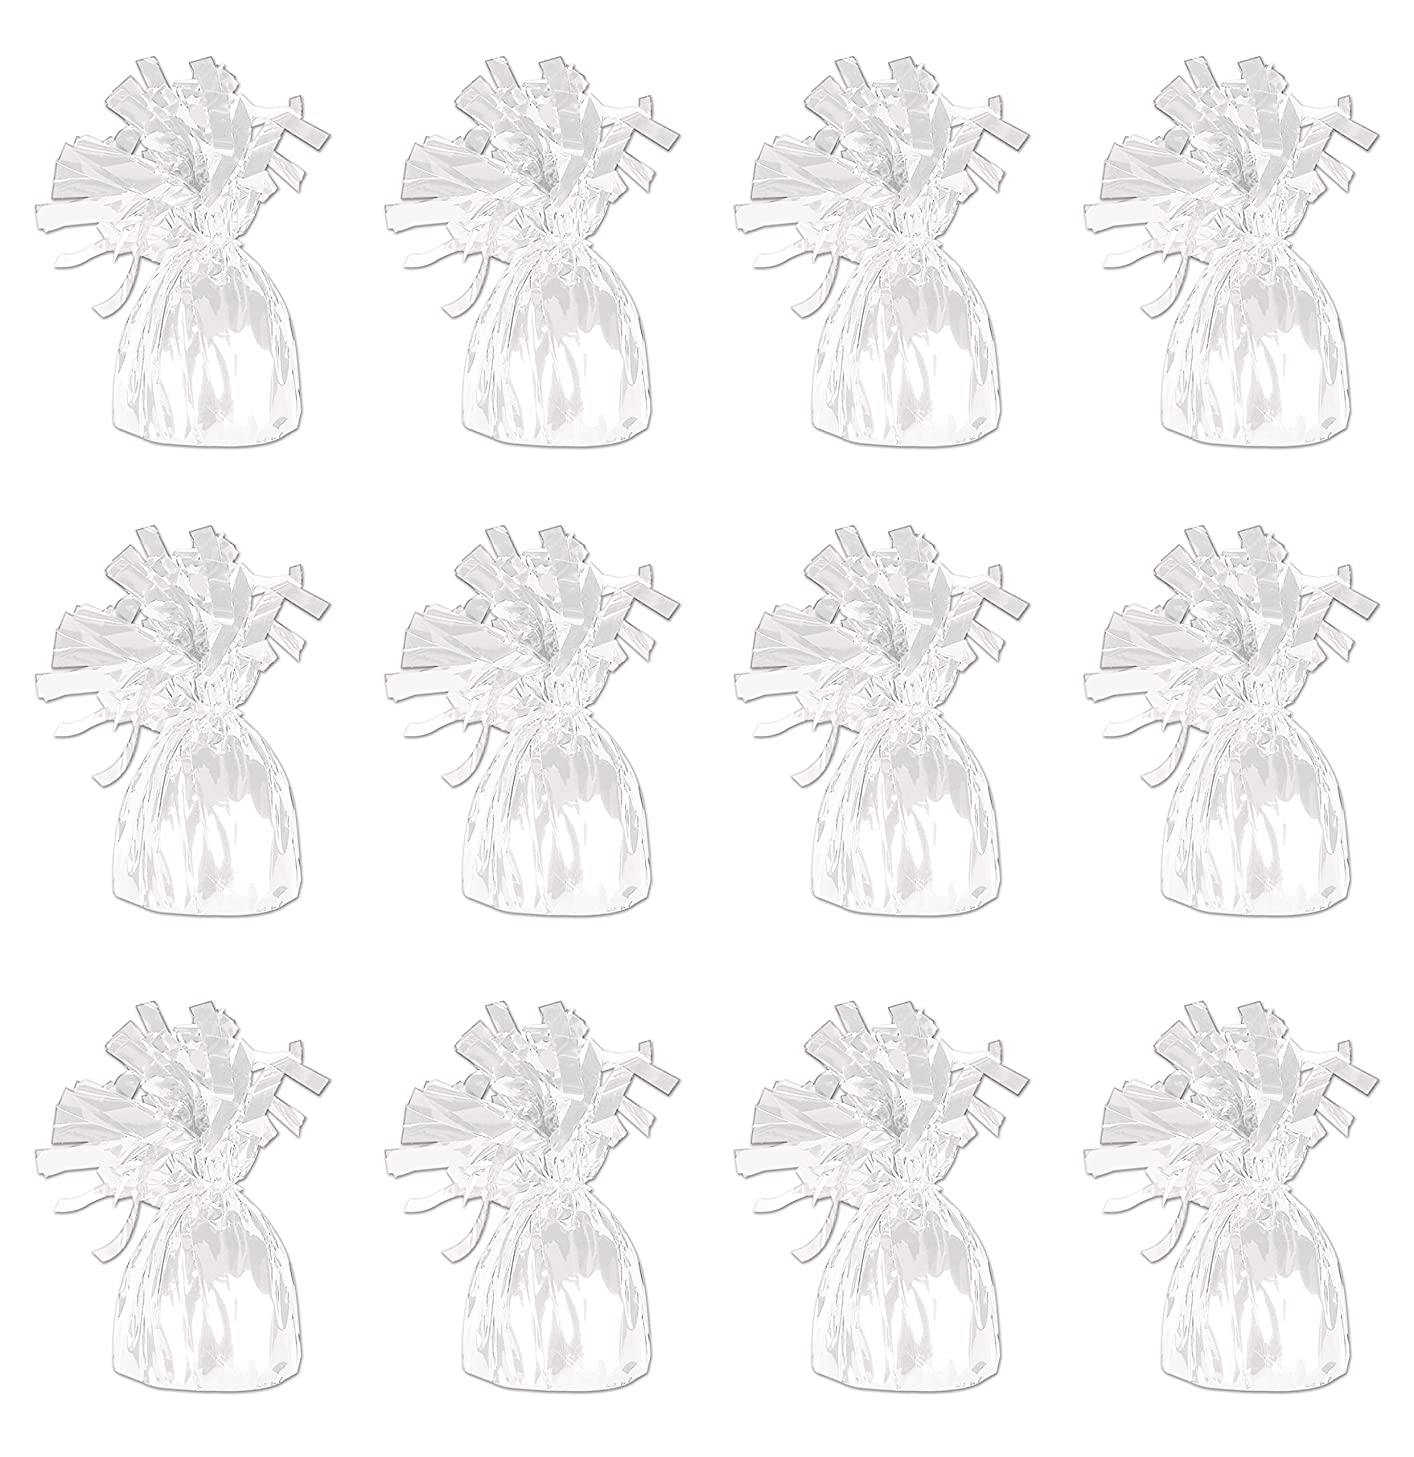 Beistle 50804-W White Metallic Wrapped Balloon Weights, Pack of 12